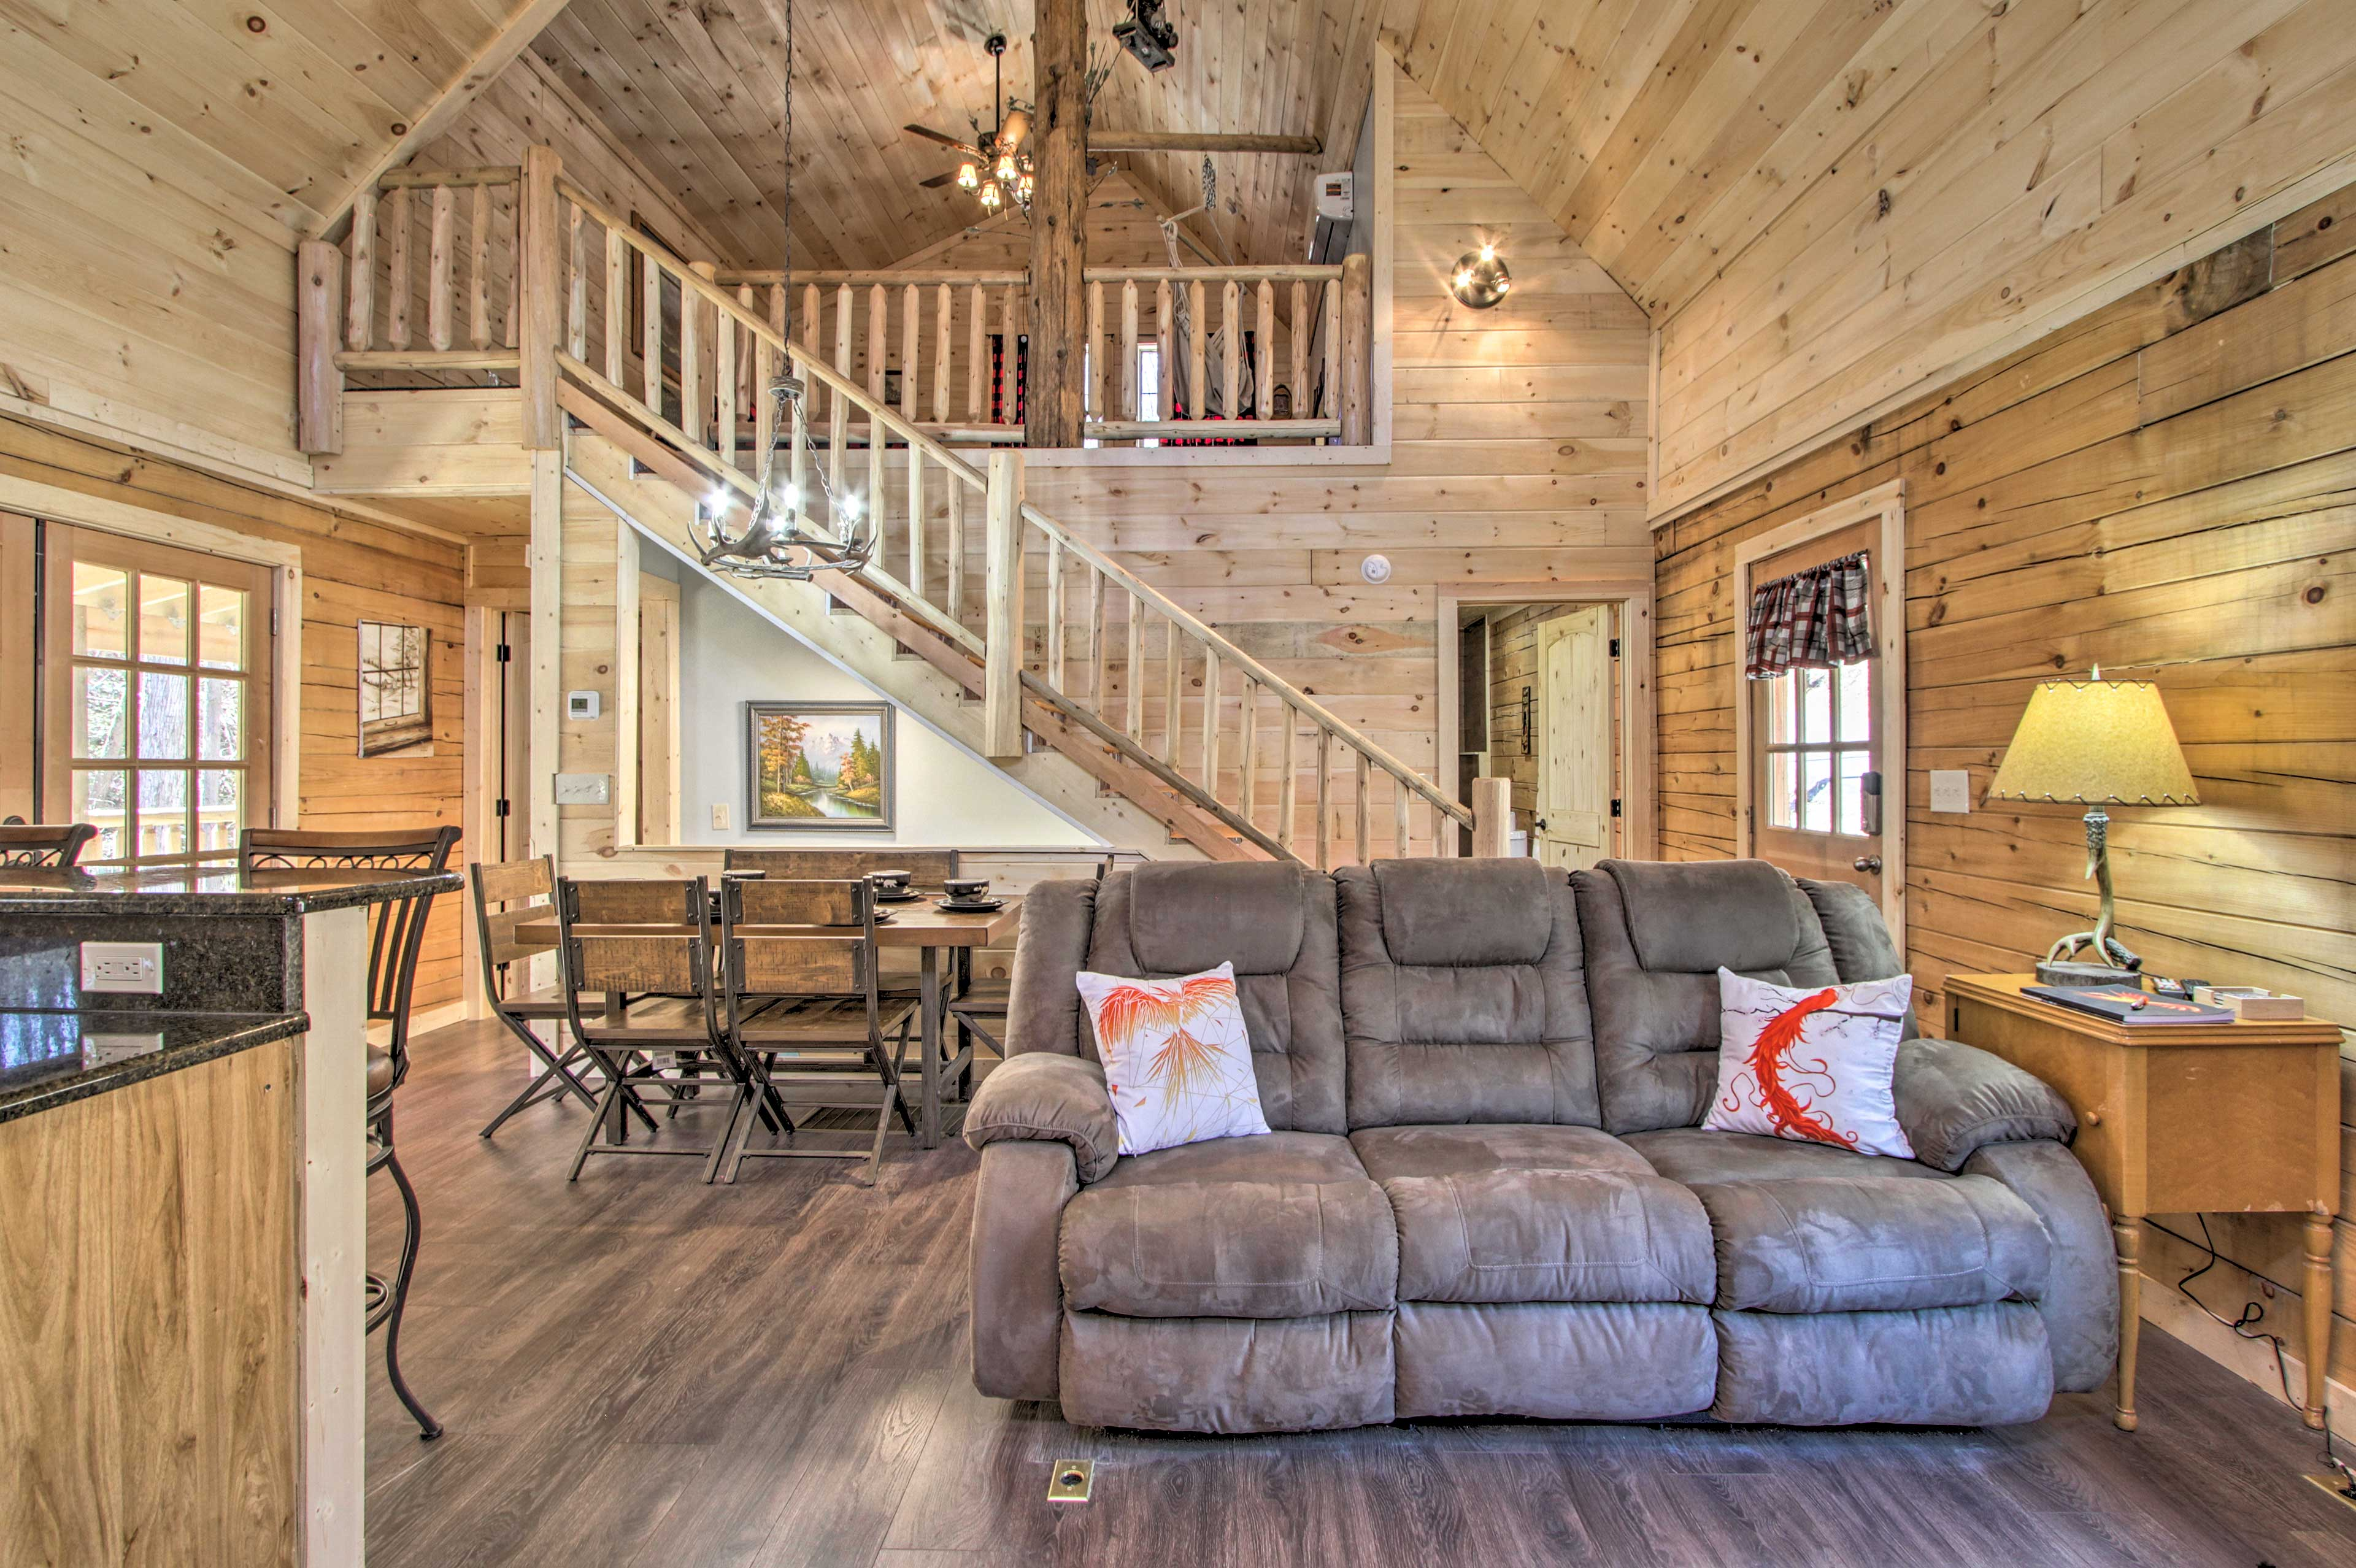 Relish vaulted ceilings, wood-adorned walls and floors, and a loft high above!